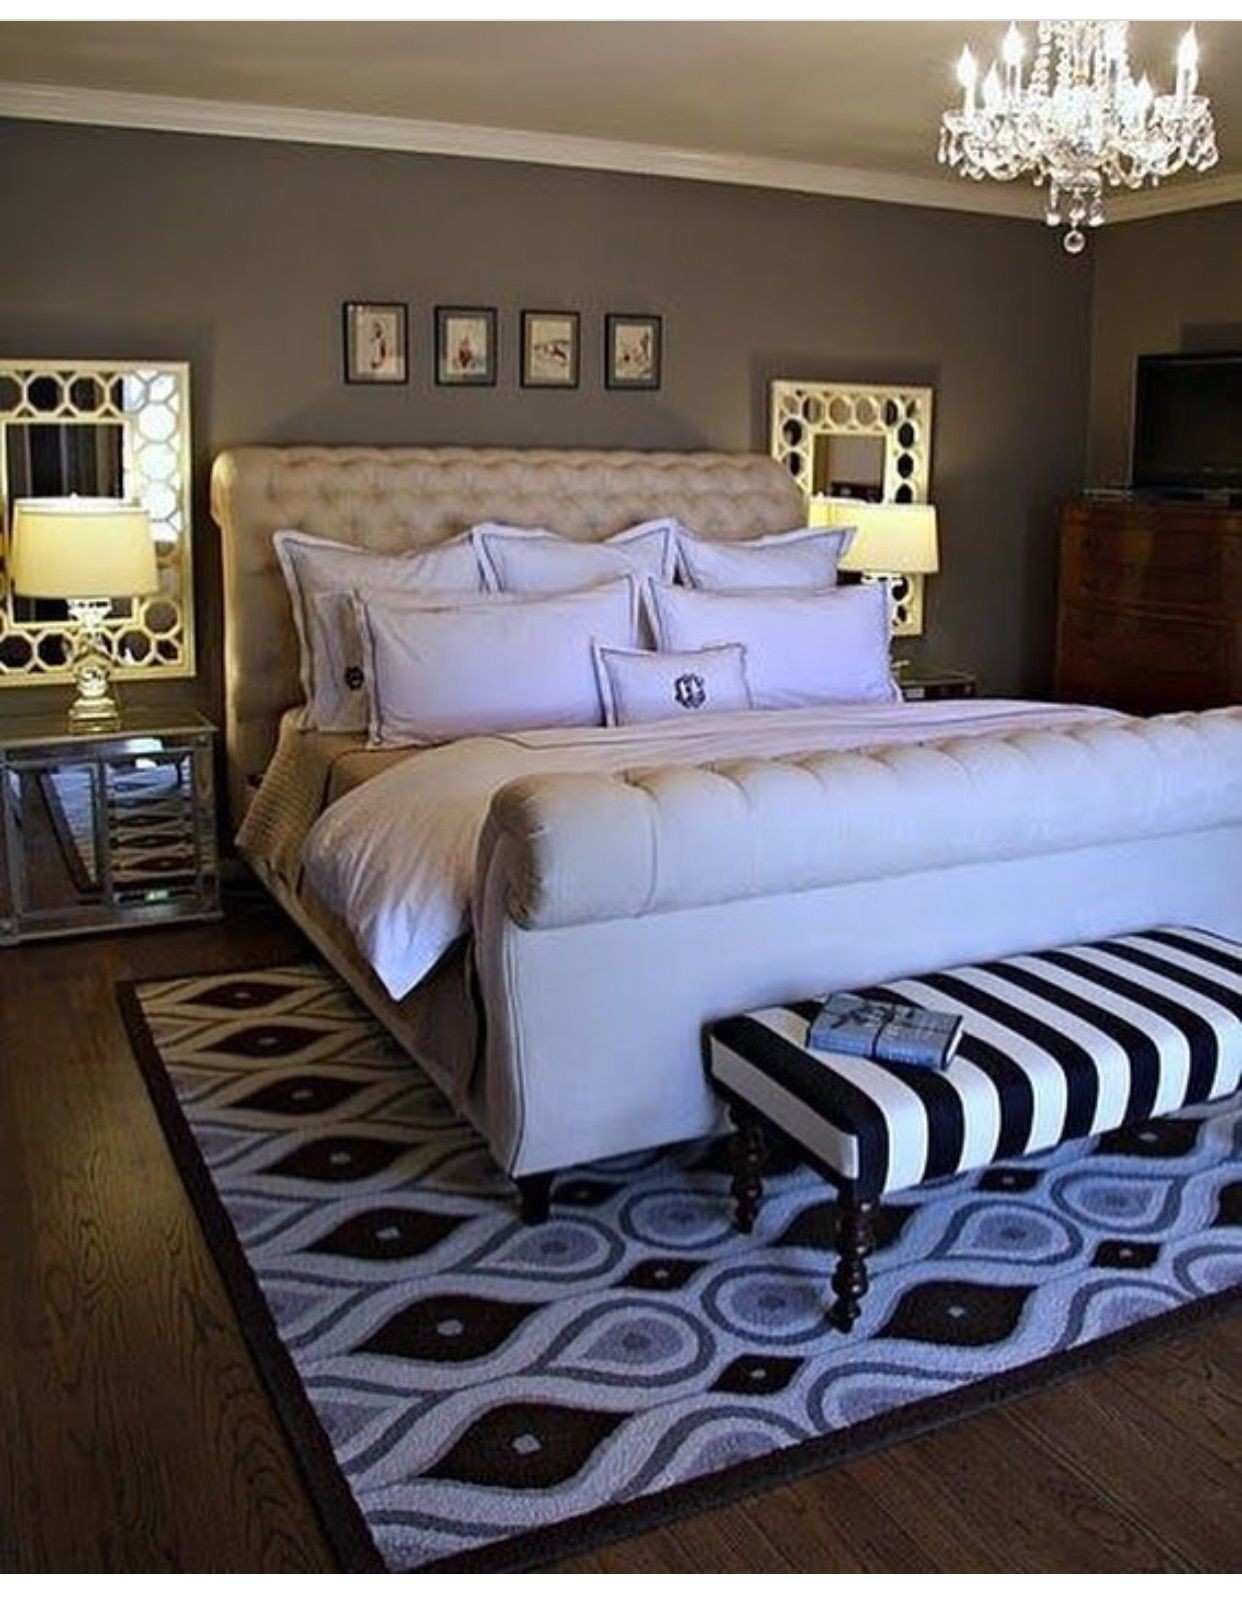 Large Bedroom Mirror Unique Pin by Jocelyn Gamino On Home Pinterest